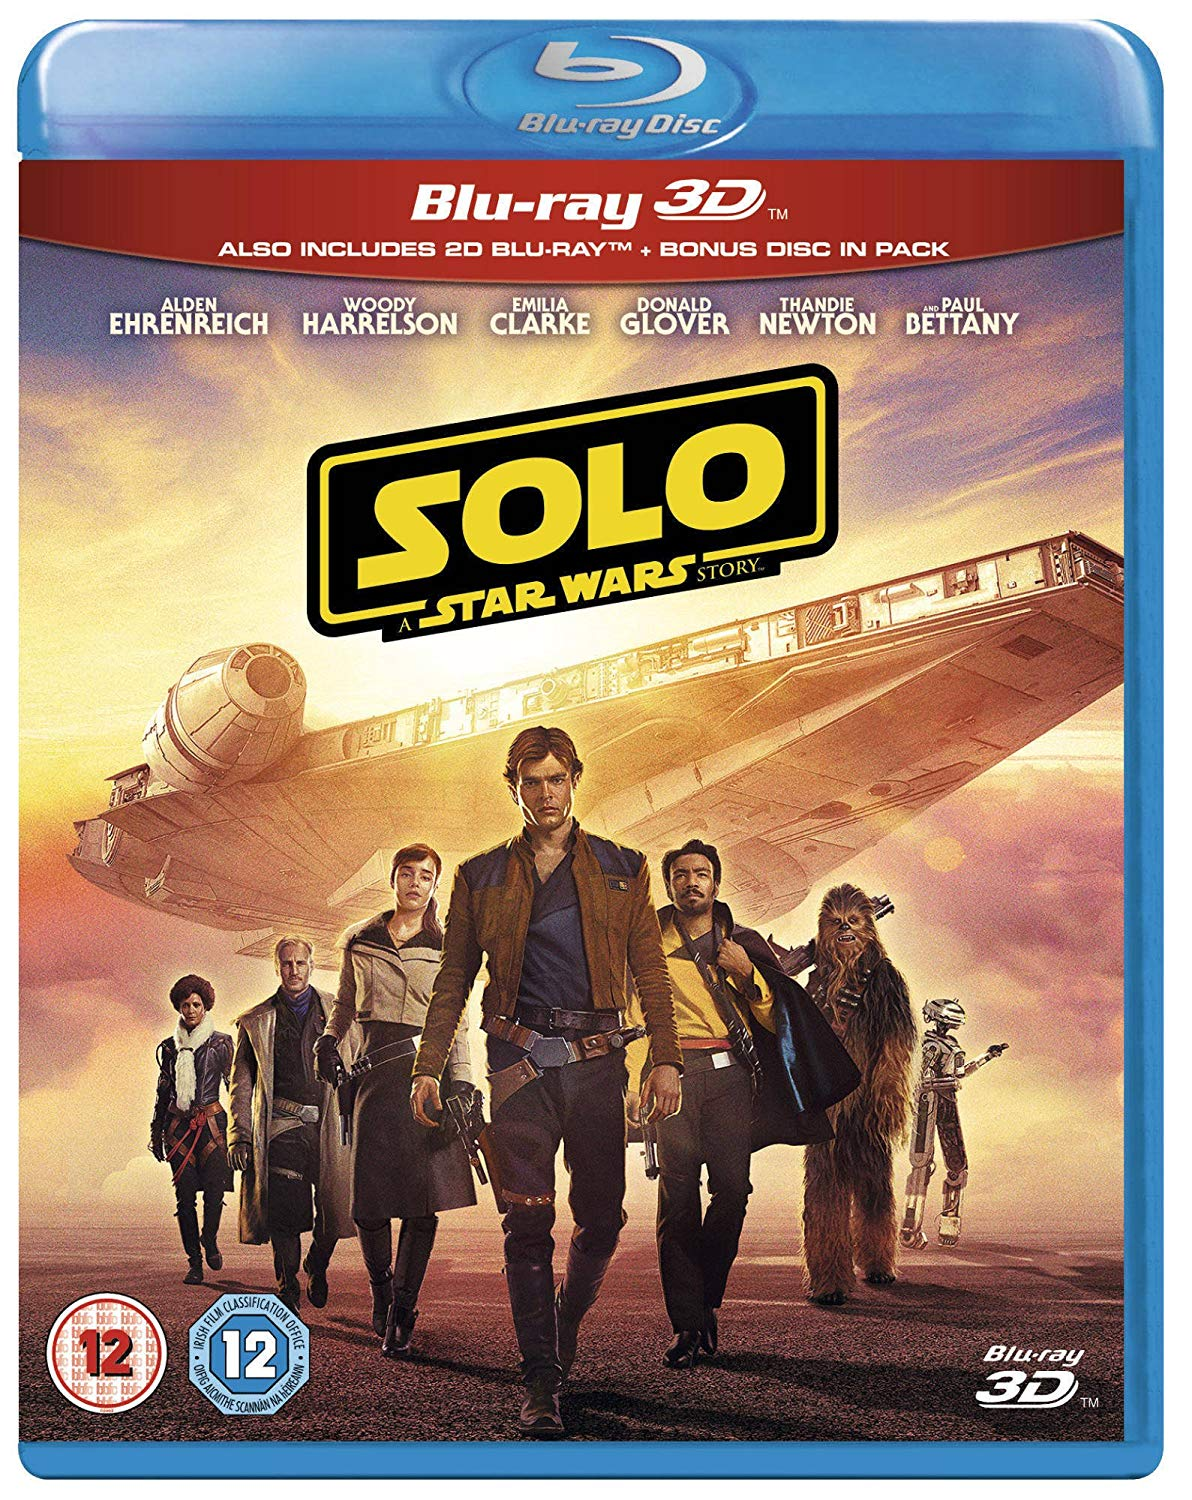 'SOLO - A STAR WARS STORY' COMES TO UK BLU-RAY AND DVD